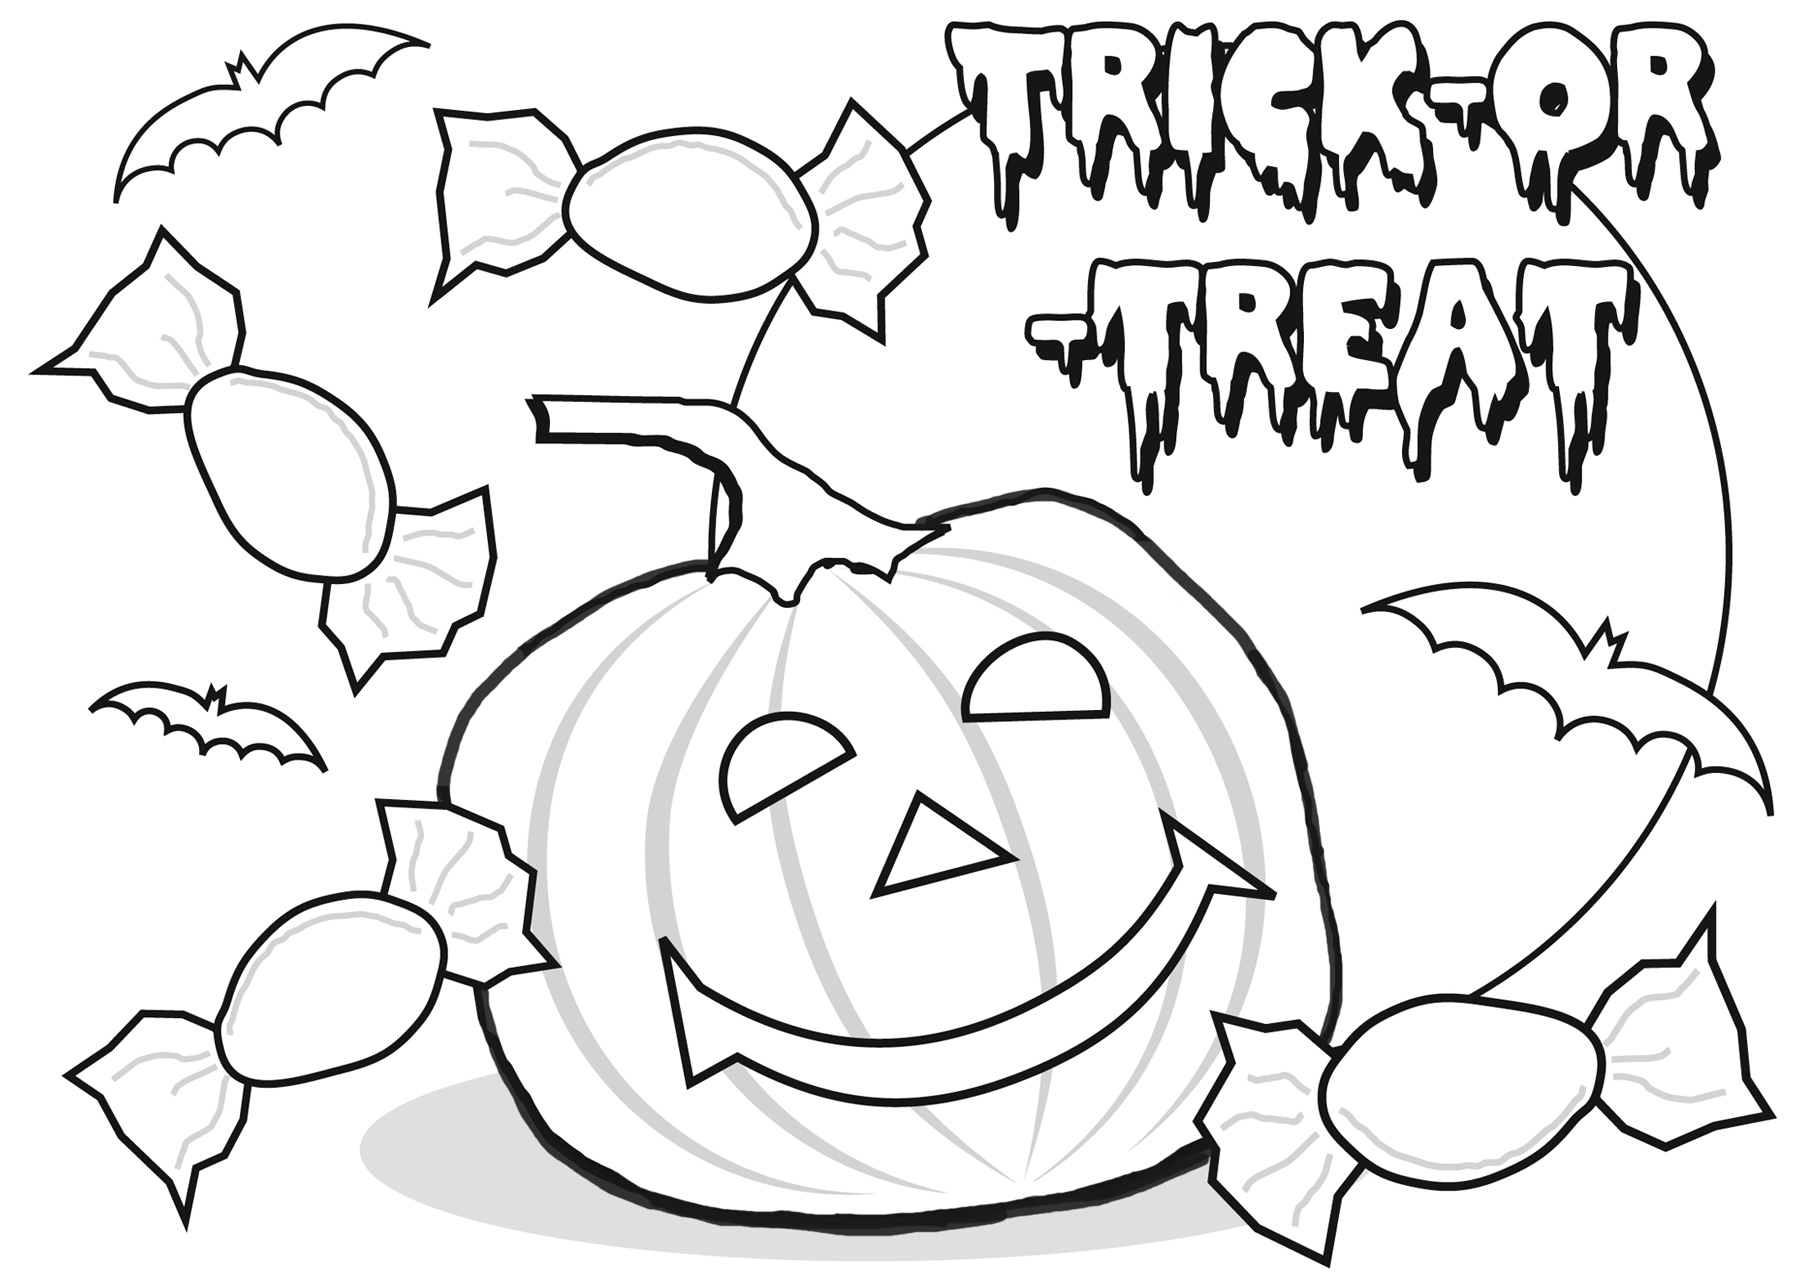 printable halloween coloring pages funny kids and halloween coloring page for kids printable pages halloween coloring printable